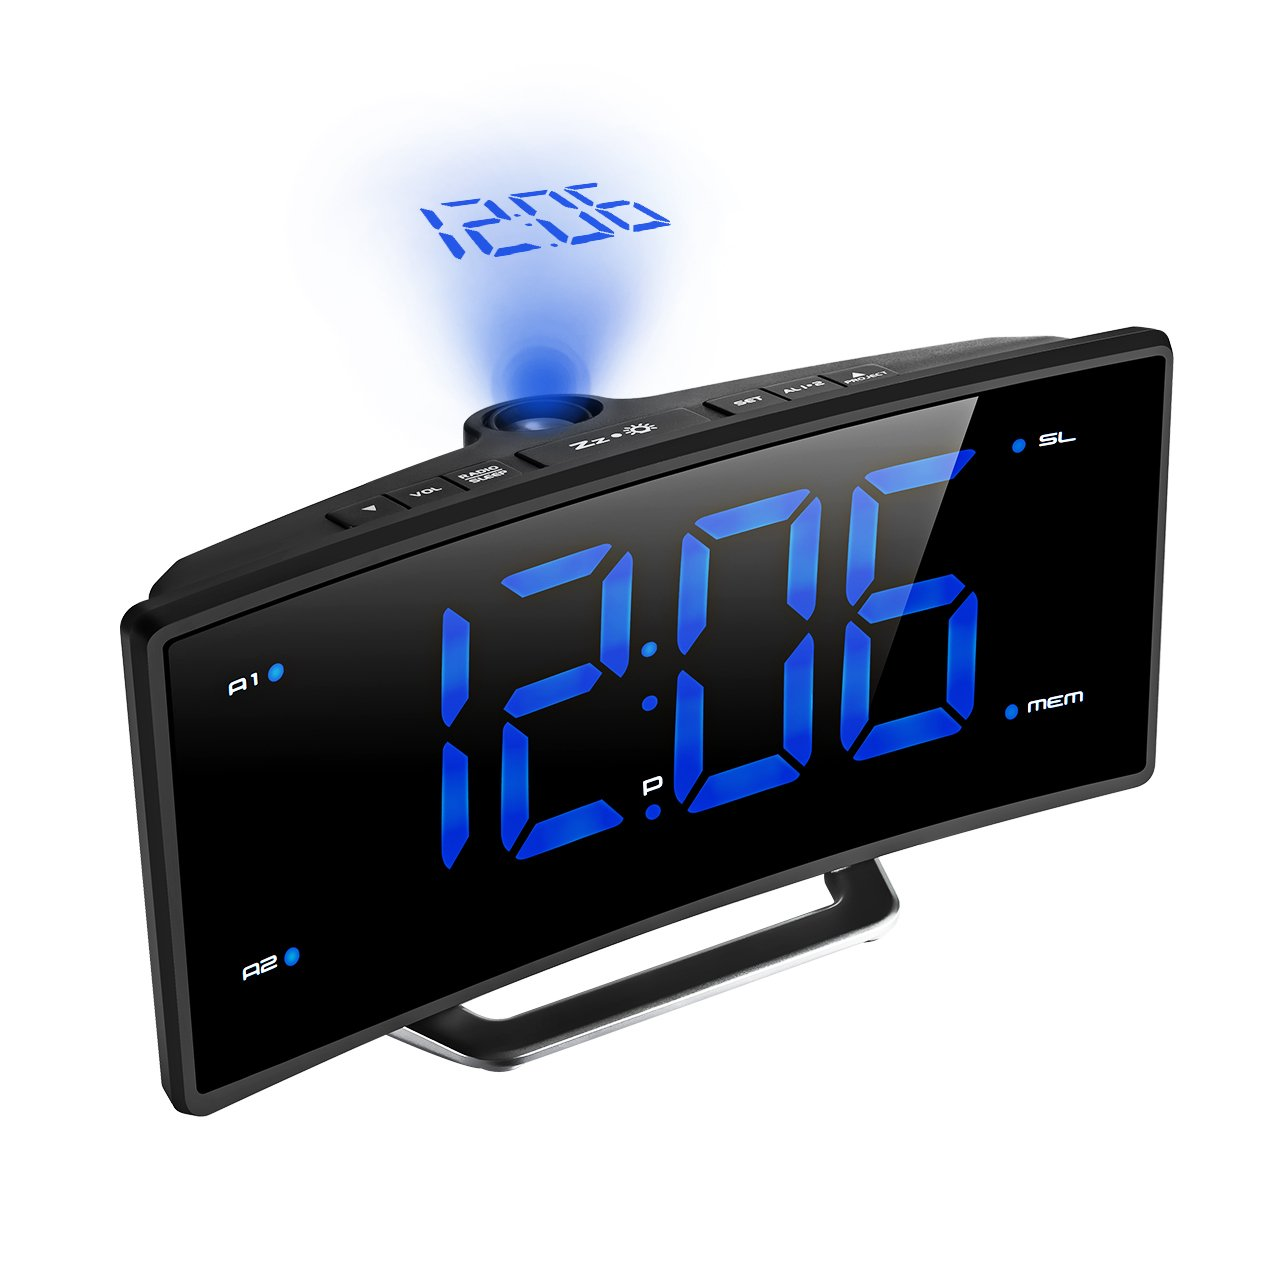 Mpow Radio Alarm Clock, Projection Alarm Clock with FM Radio, Dual Alarms Digital Ceiling Clock Bedside Alarm Clock with USB Charging Port, Snooze Function, 2-inch Large LED Display, Dimmer, Sleep Timer, 12/24 Hour - Mains Powered PAGEHM074BBUK-UKVV2